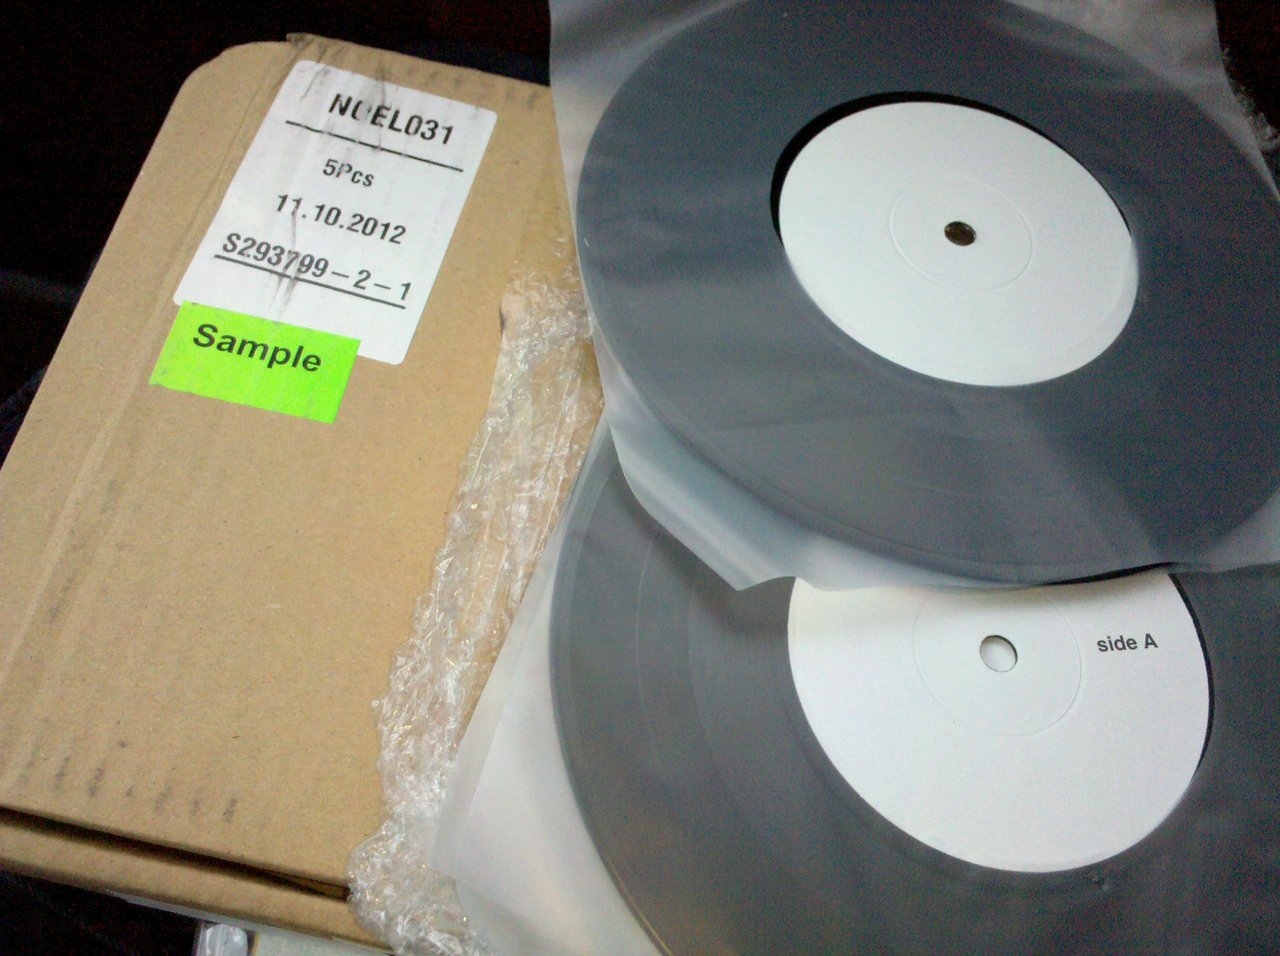 Test pressings for the Sofy Major/Uncle Touchy split…so much hate. http://www.nolistrecords.com/review/noel031/